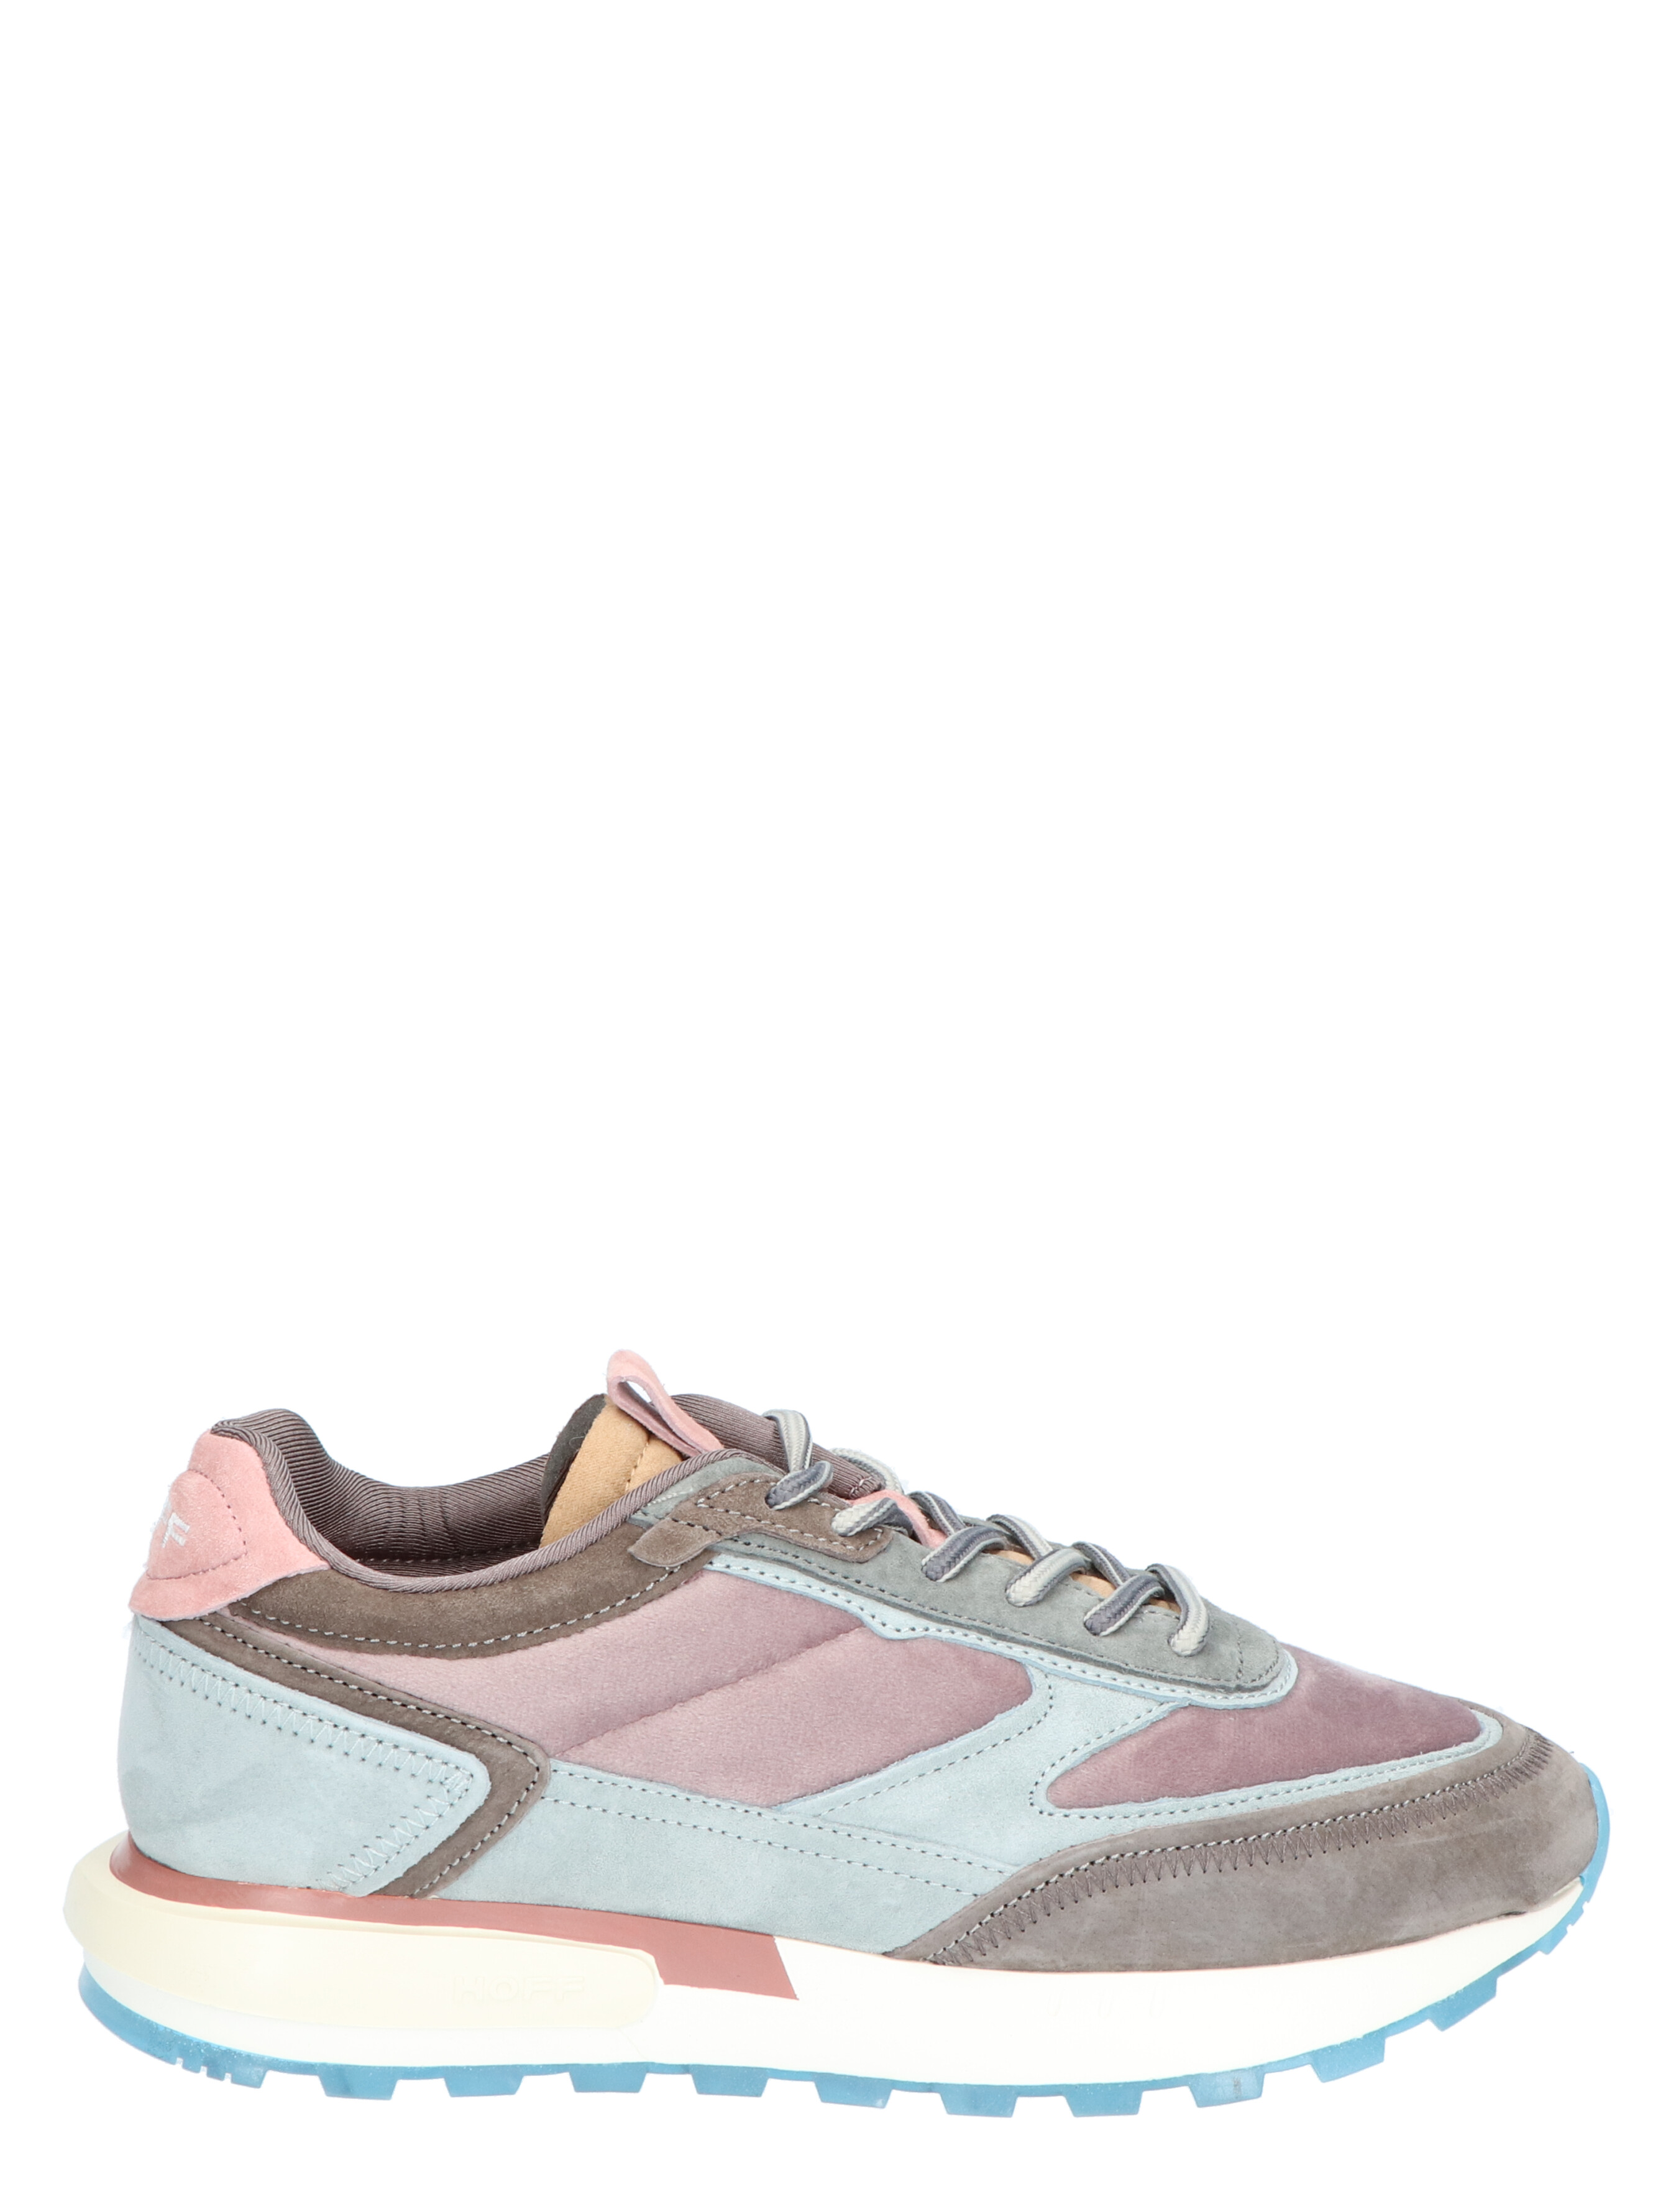 The Hoff Tribe 22107003 Hopi Lage sneakers